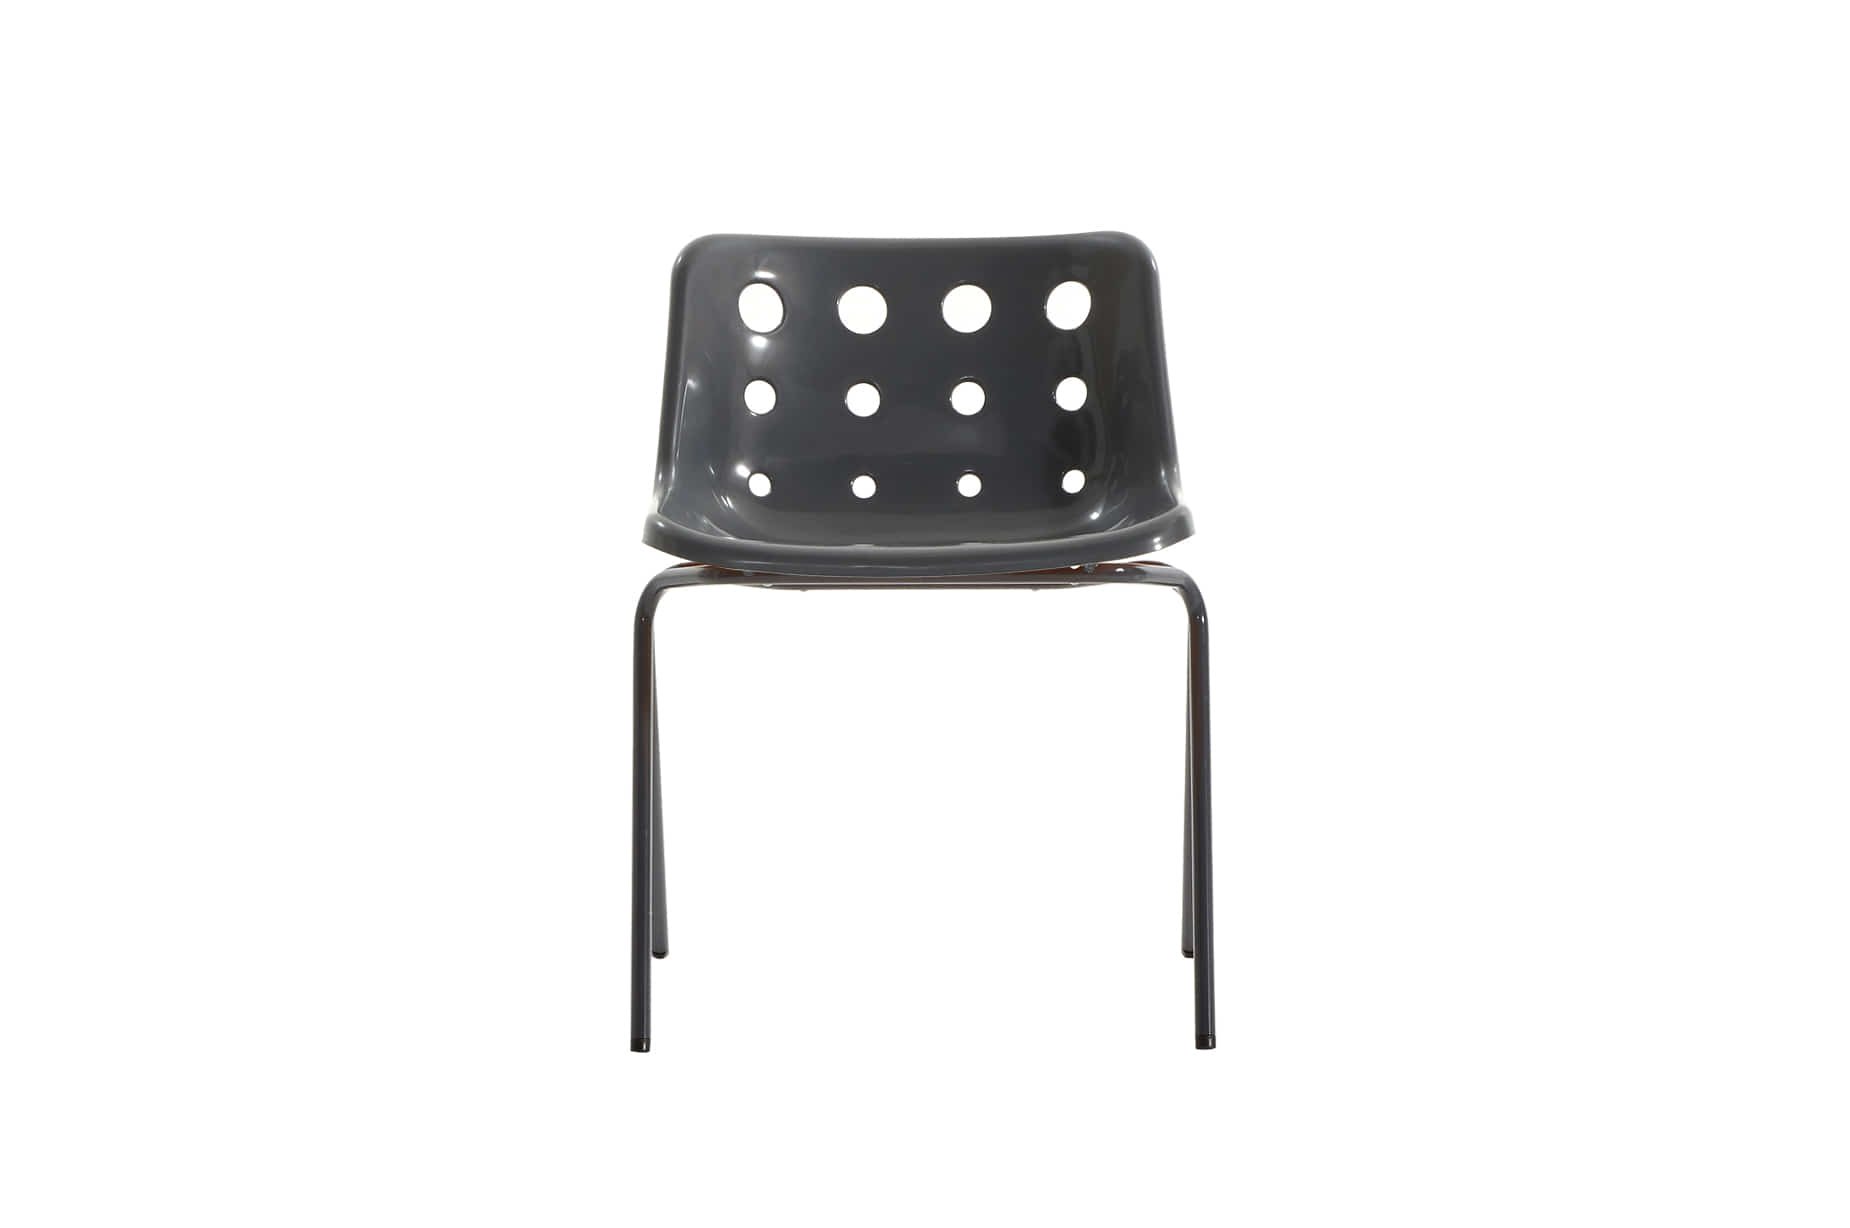 (주)도이치[BRITISHER] POLO chair by Robinday 1972 / grey leg